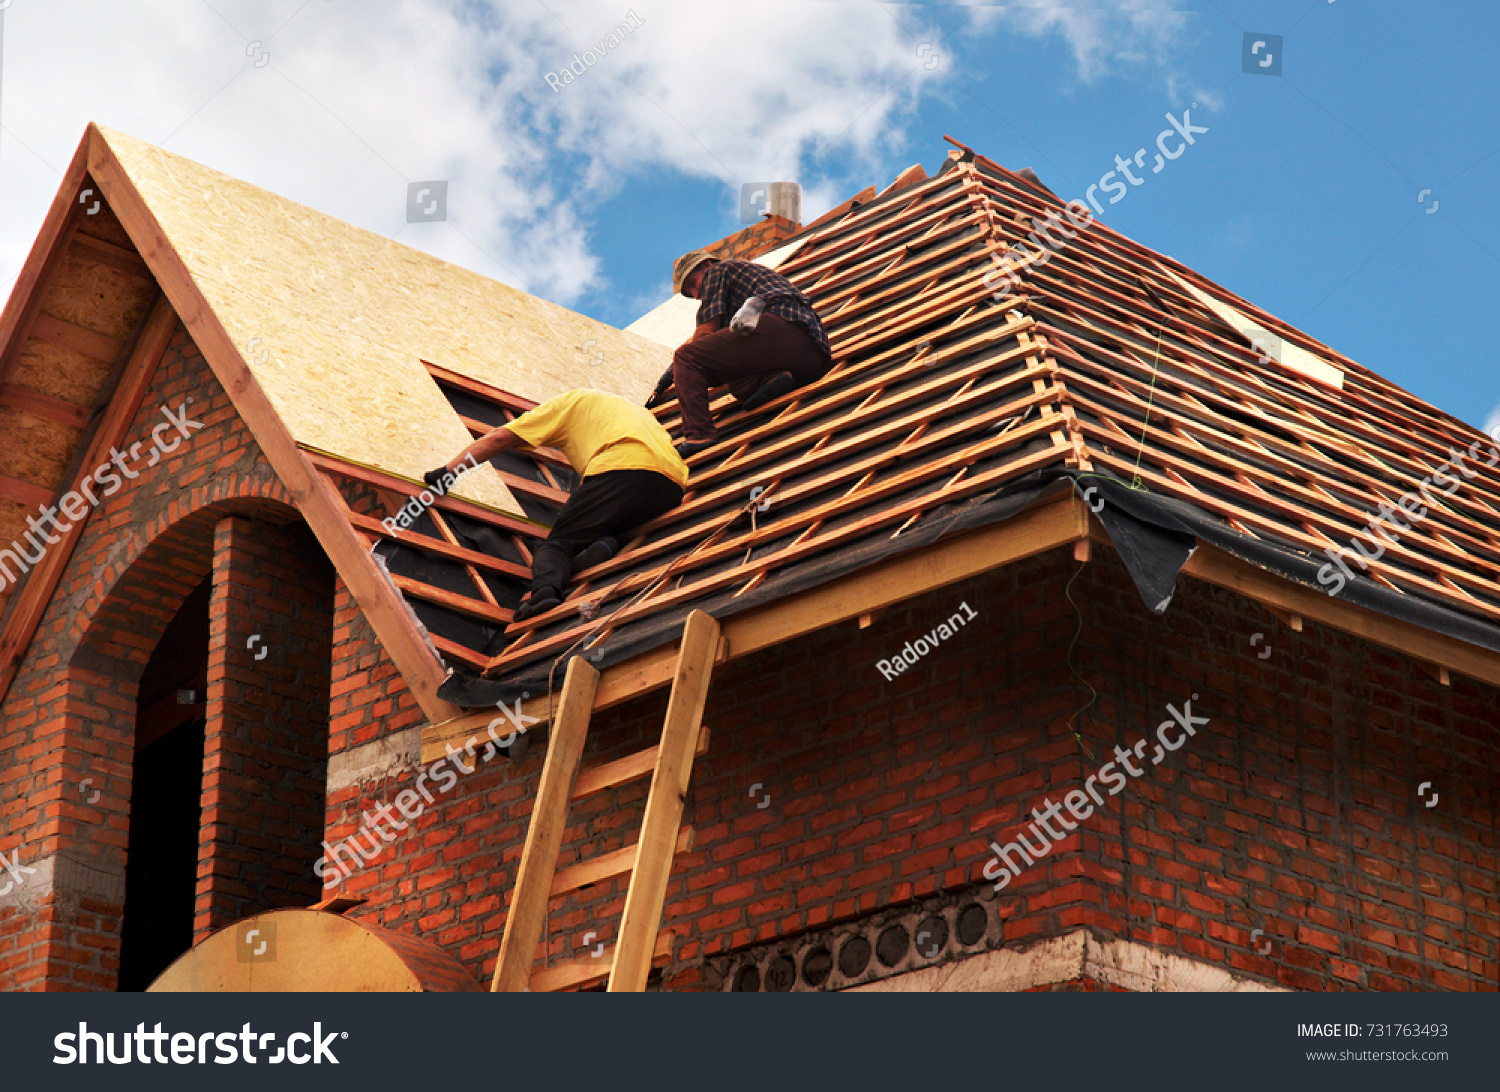 Roofing Contractors Installing House Roof Board for Asphalt Shingles. Roofing Contractor. Roofing Construction. Roof Repair. #731763493